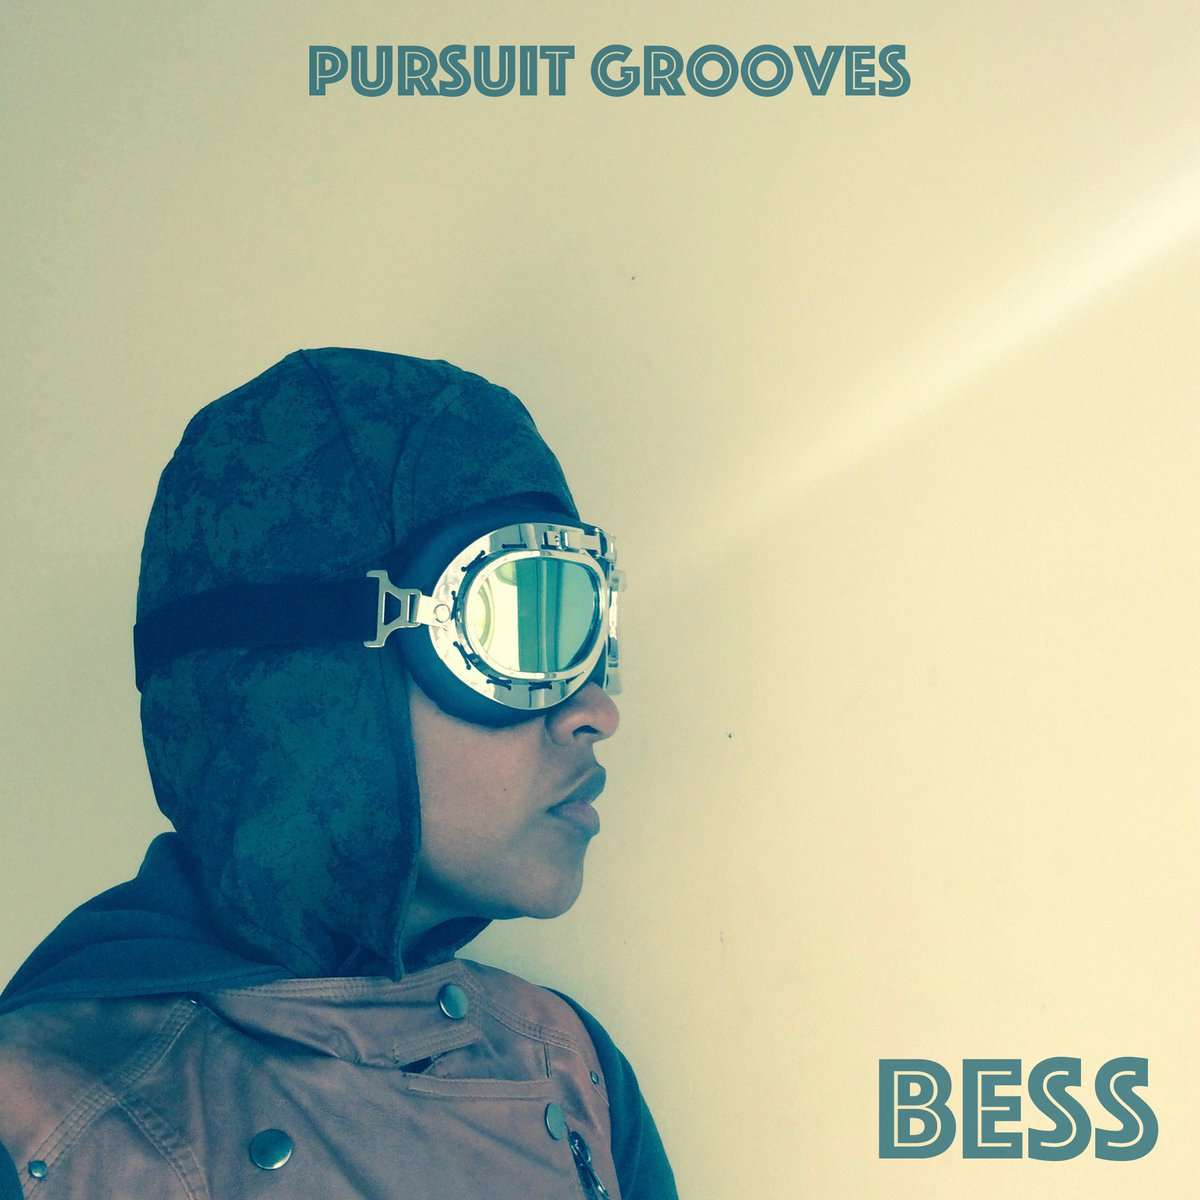 EGcw1vWW4AAWXj3 1 - Coming November 15, experimental electronic music producerperformer Pursuit Grooves presents her new album Bess. A tribute to Bessie Coleman, the first Black American female pilot, who left for France to obtain her international pilots license in 1921.